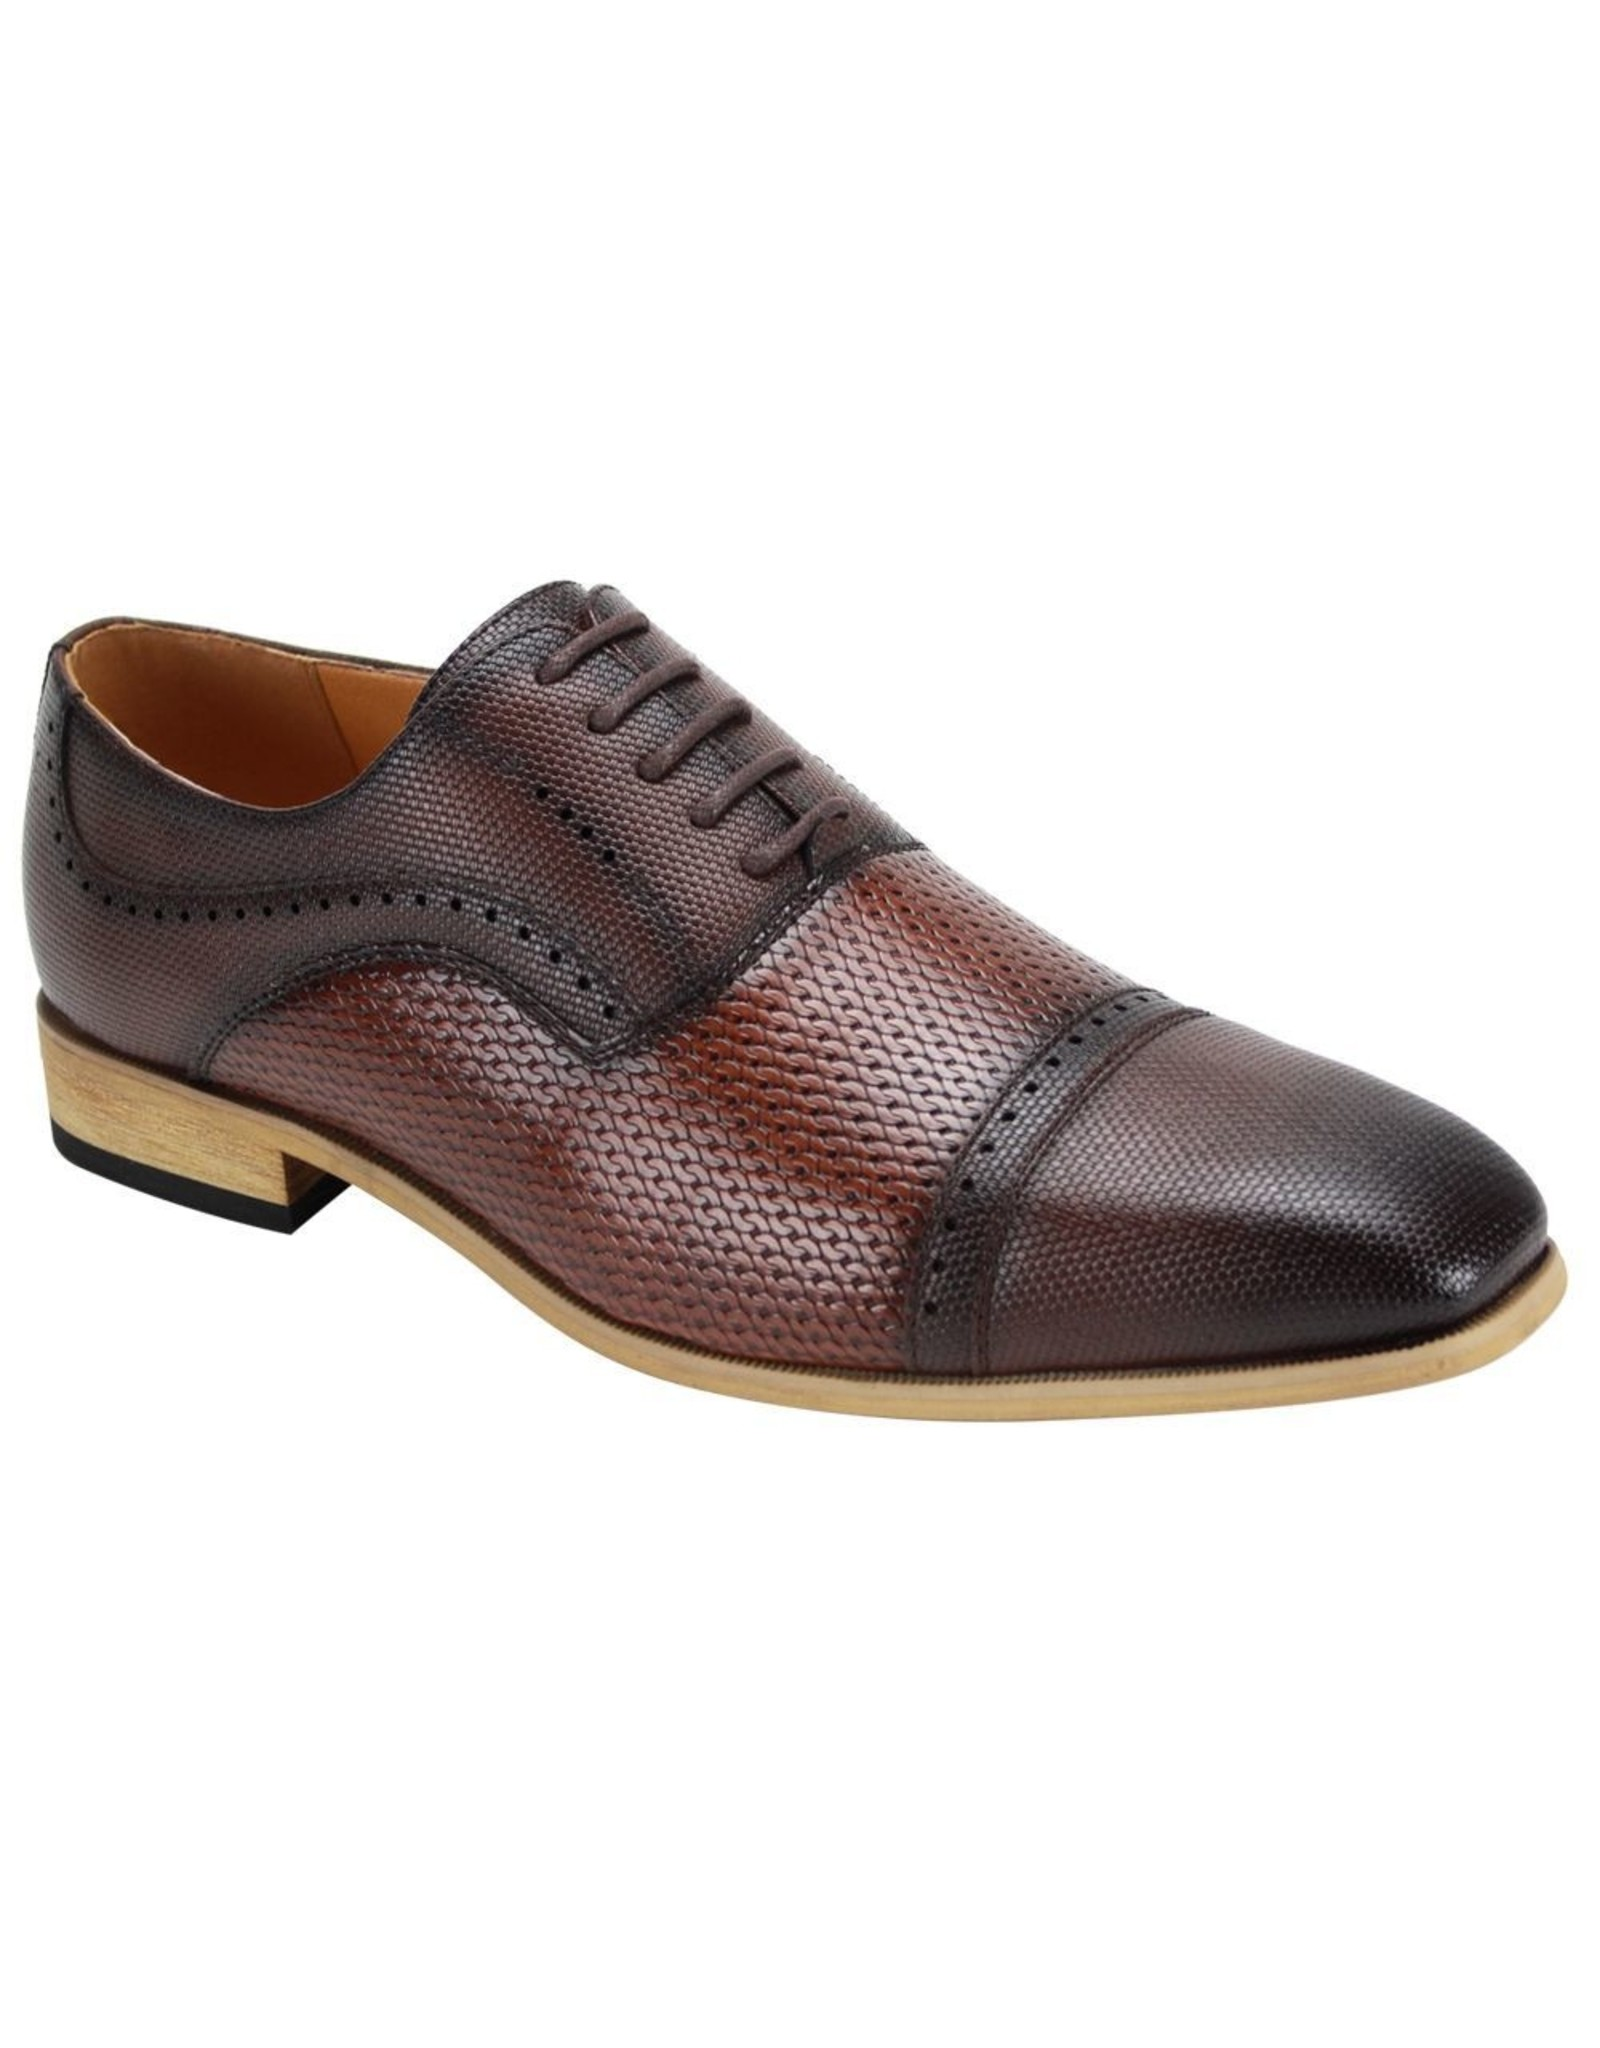 Antonio Cerrelli Antonio Cerrelli 6875 Dress Shoe - Brown